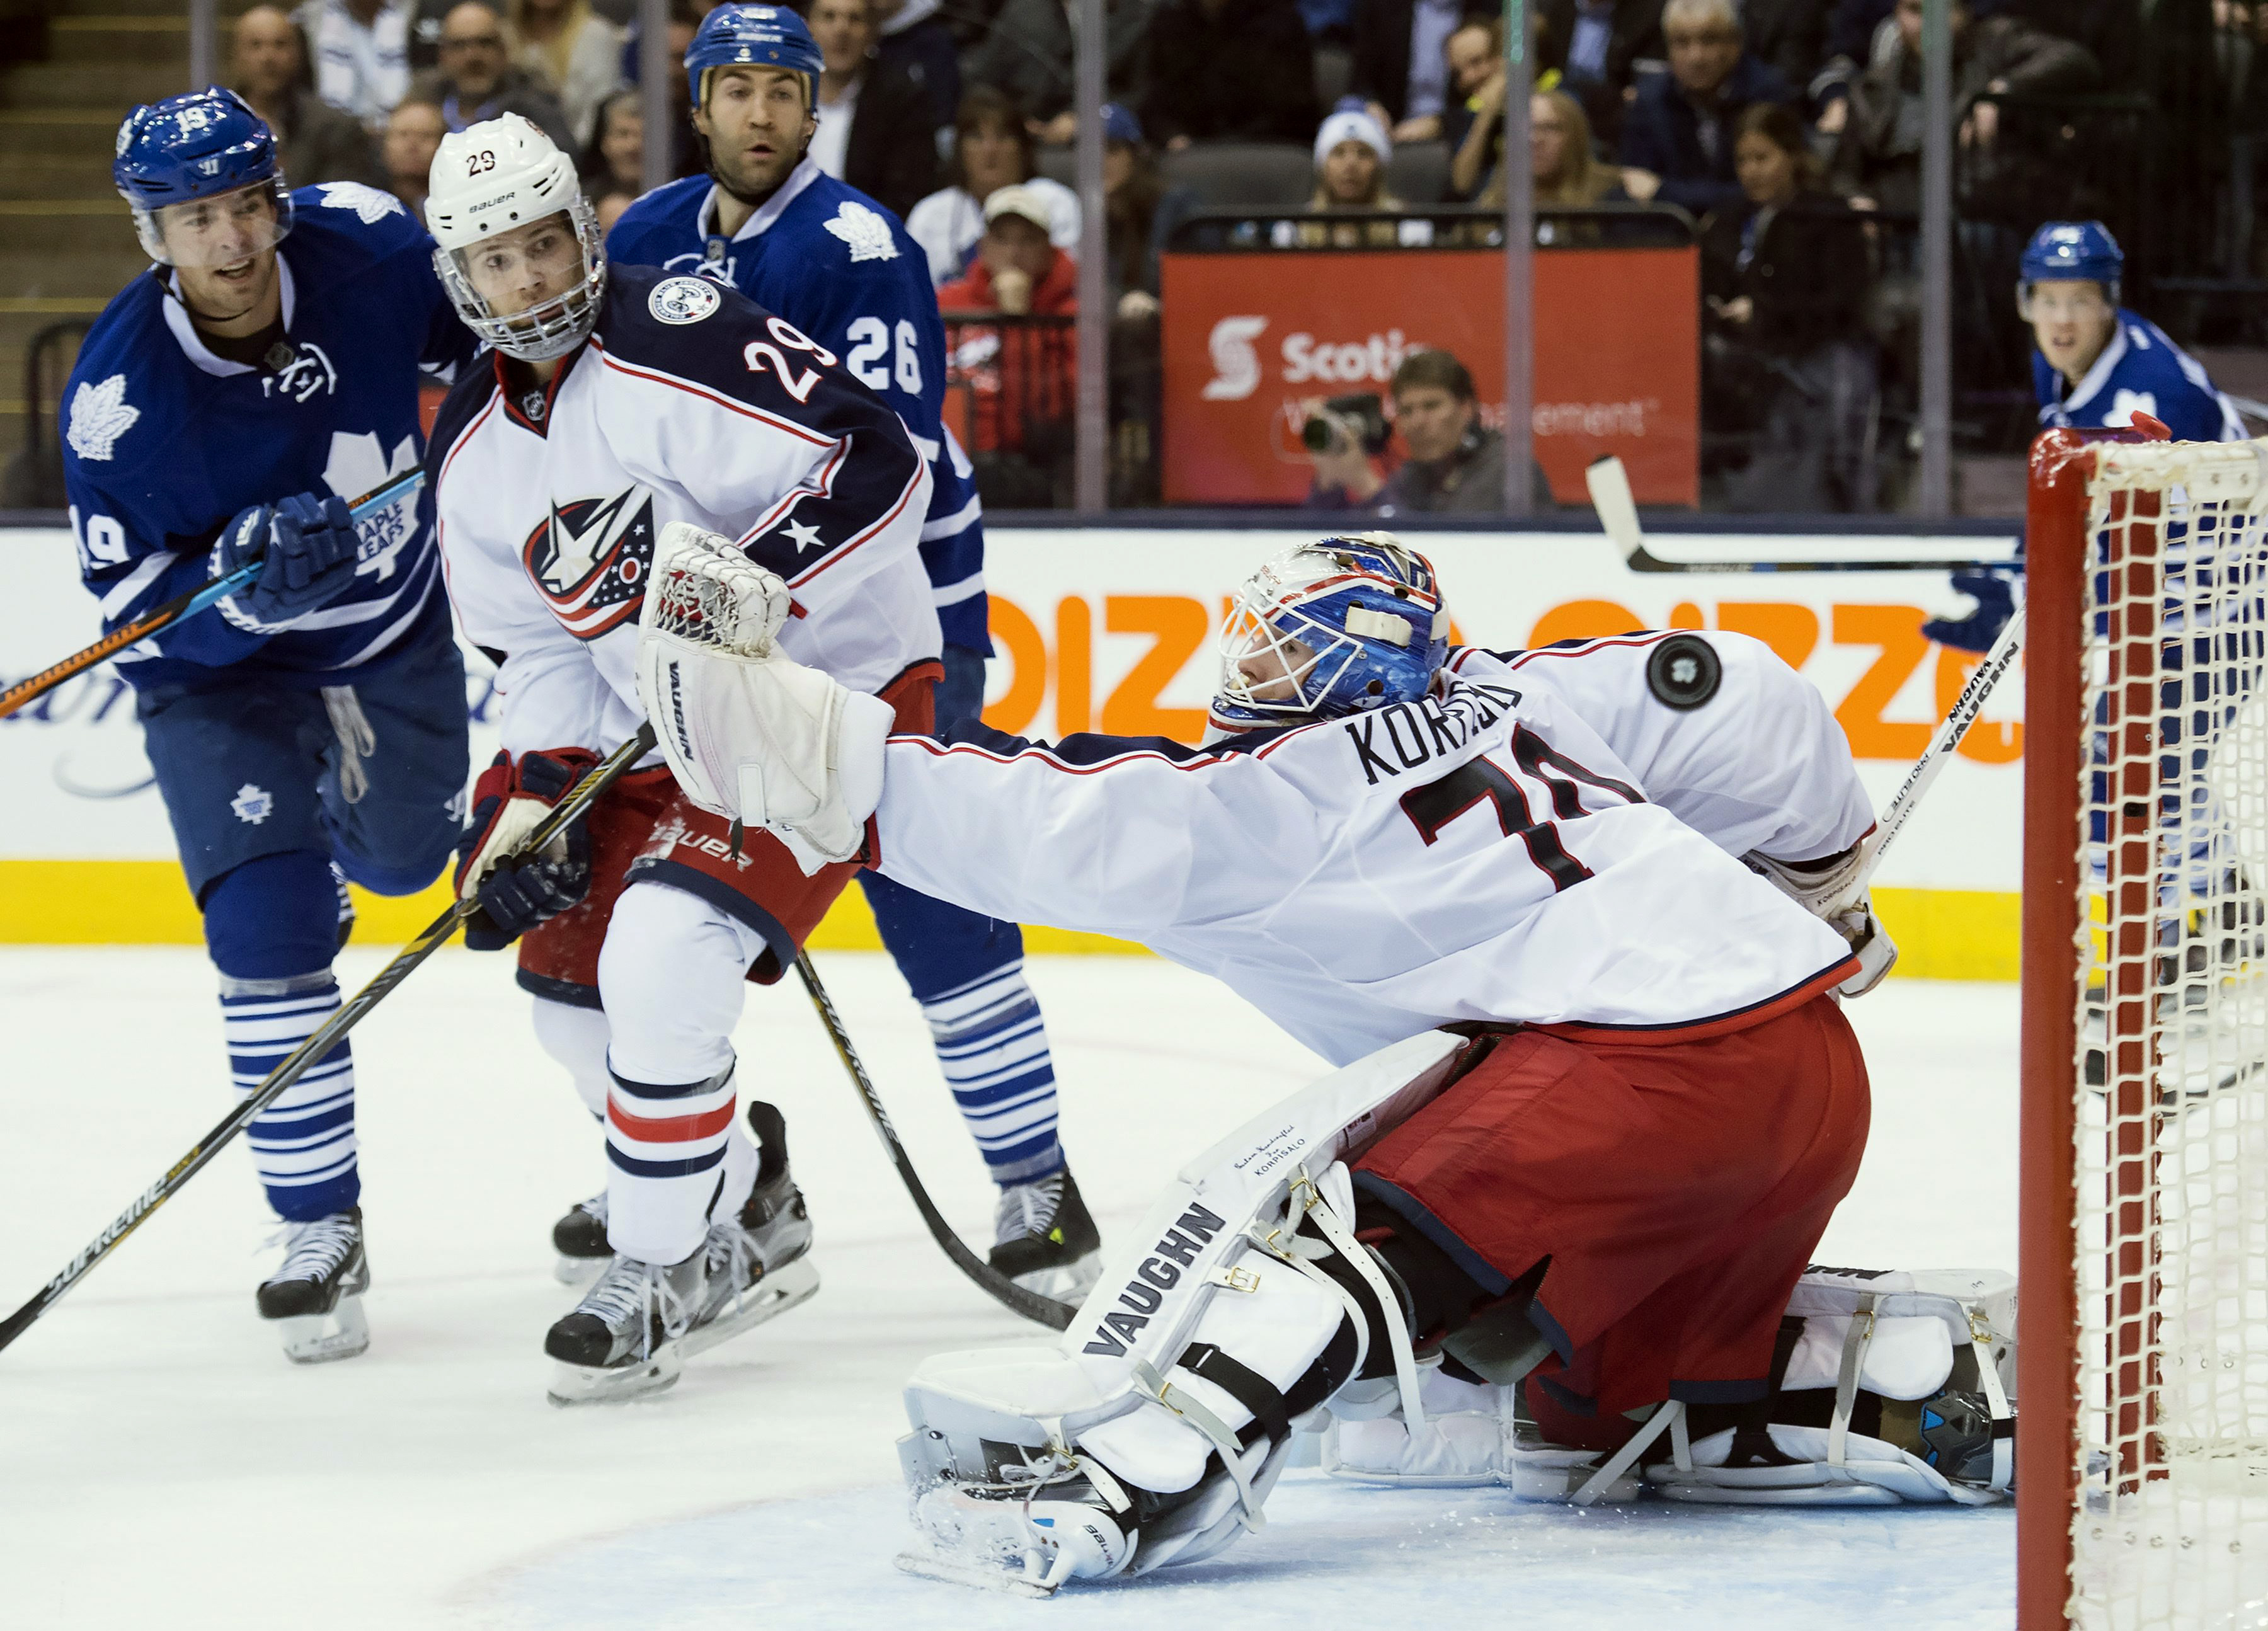 Toronto Maple Leafs right wing Joffrey Lupul (19) shoots the puck wide on Columbus Blue Jackets goalie Joonas Korpisalo (70) as Blue Jackets defenseman Cody Goloubef (29) keeps close during the second period of an NHL hockey game in Toronto, Wednesday, Ja